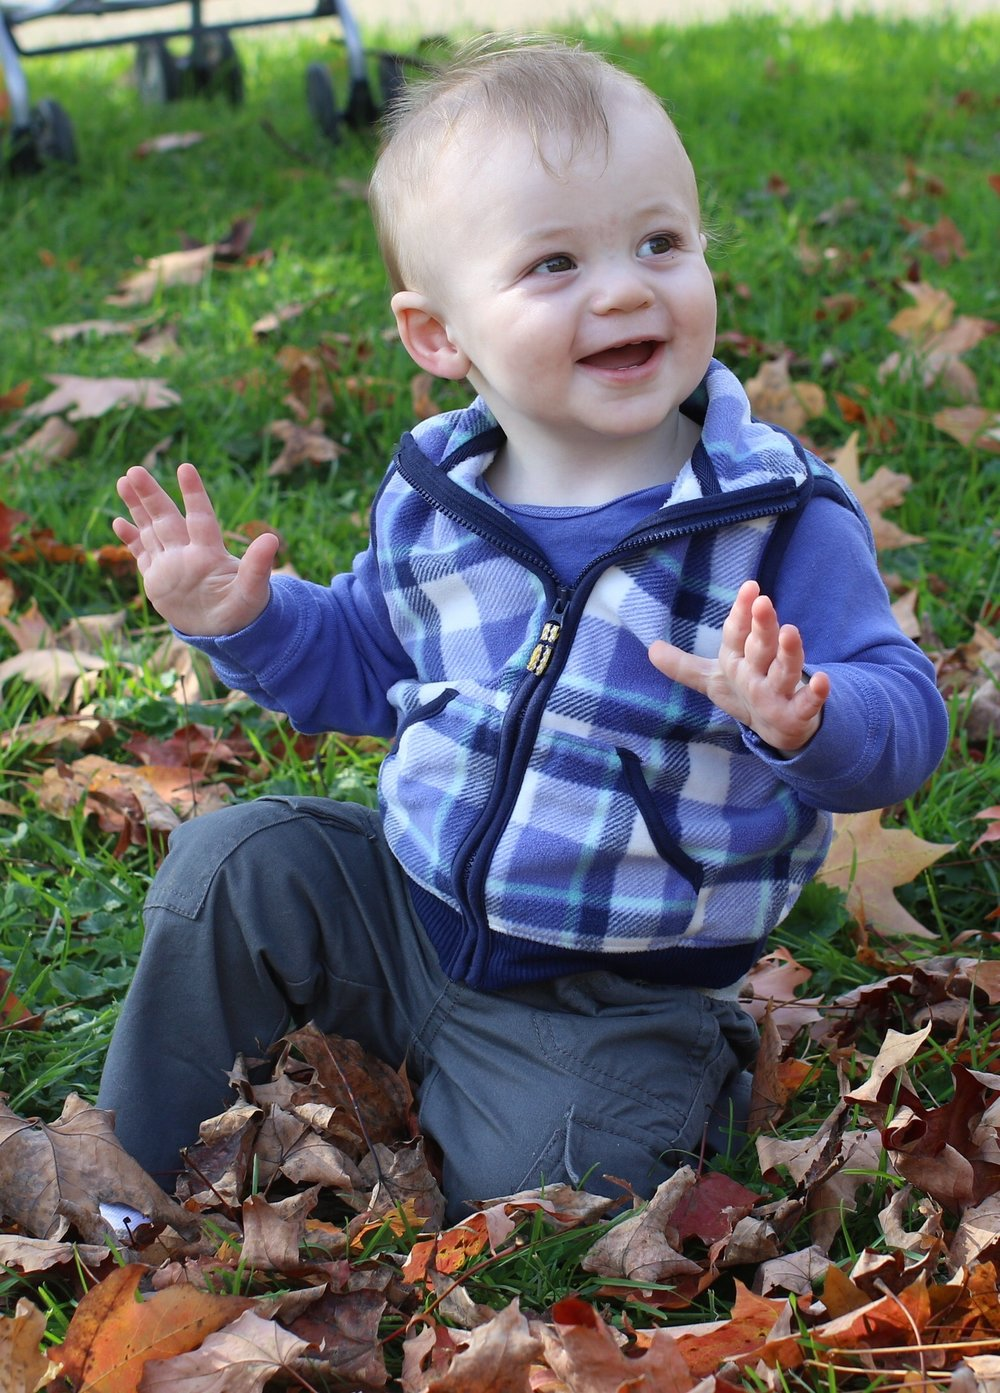 Julian, almost 1 whole year, playing in the leaves (photo by Carla Roehner)